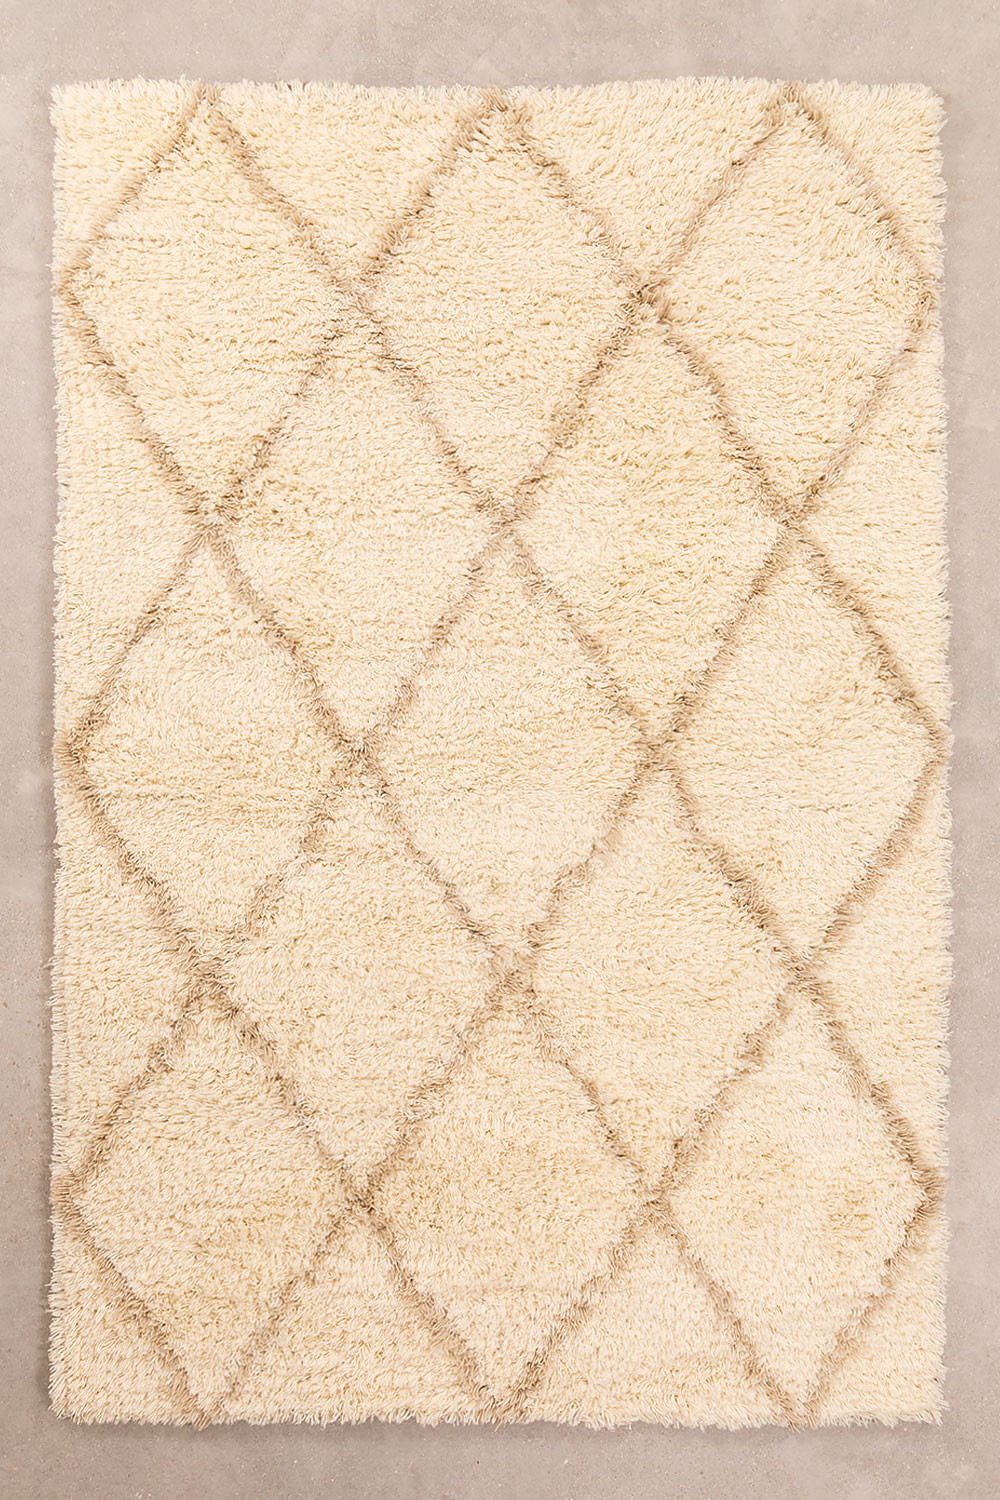 Cotton and Wool Rug (235x155 cm) Kailin, gallery image 1